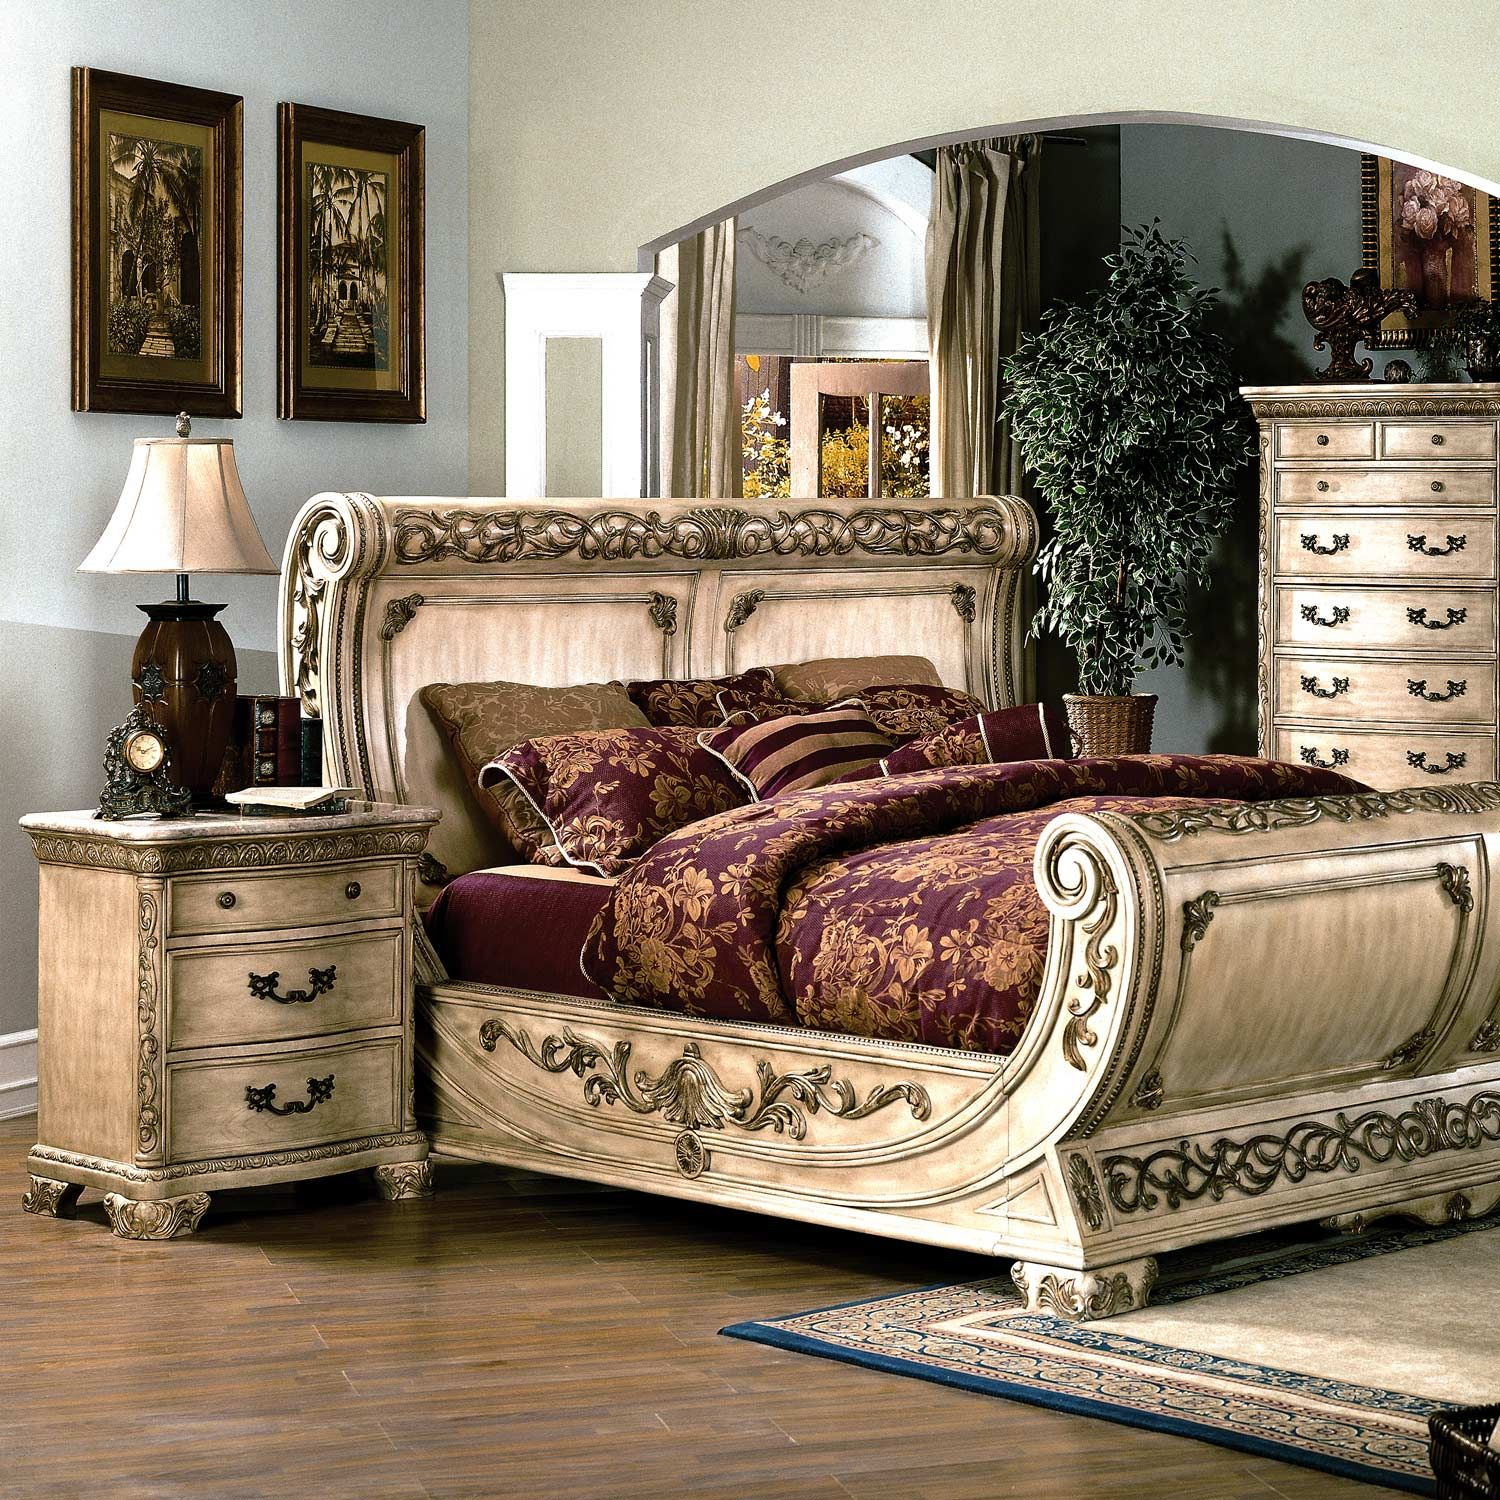 Cannes Bedroom Set Gondola Sleigh Bed Whitewash Bedroom Sets Bedroom Design Traditional Bedroom Decor